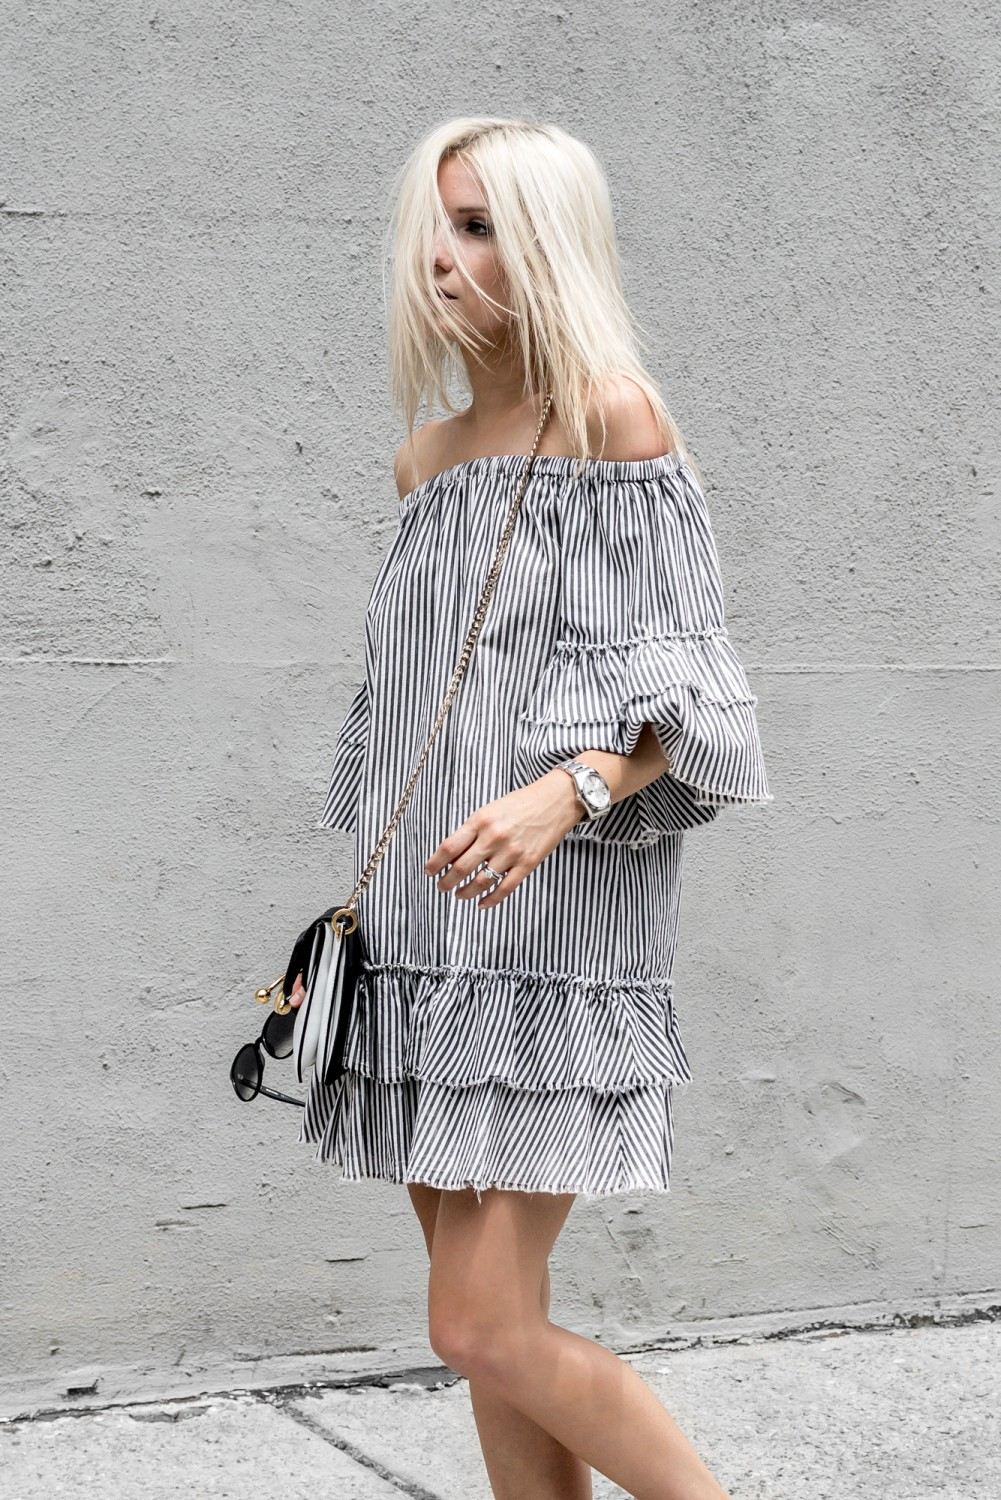 figtny.com | Ruffled + Striped